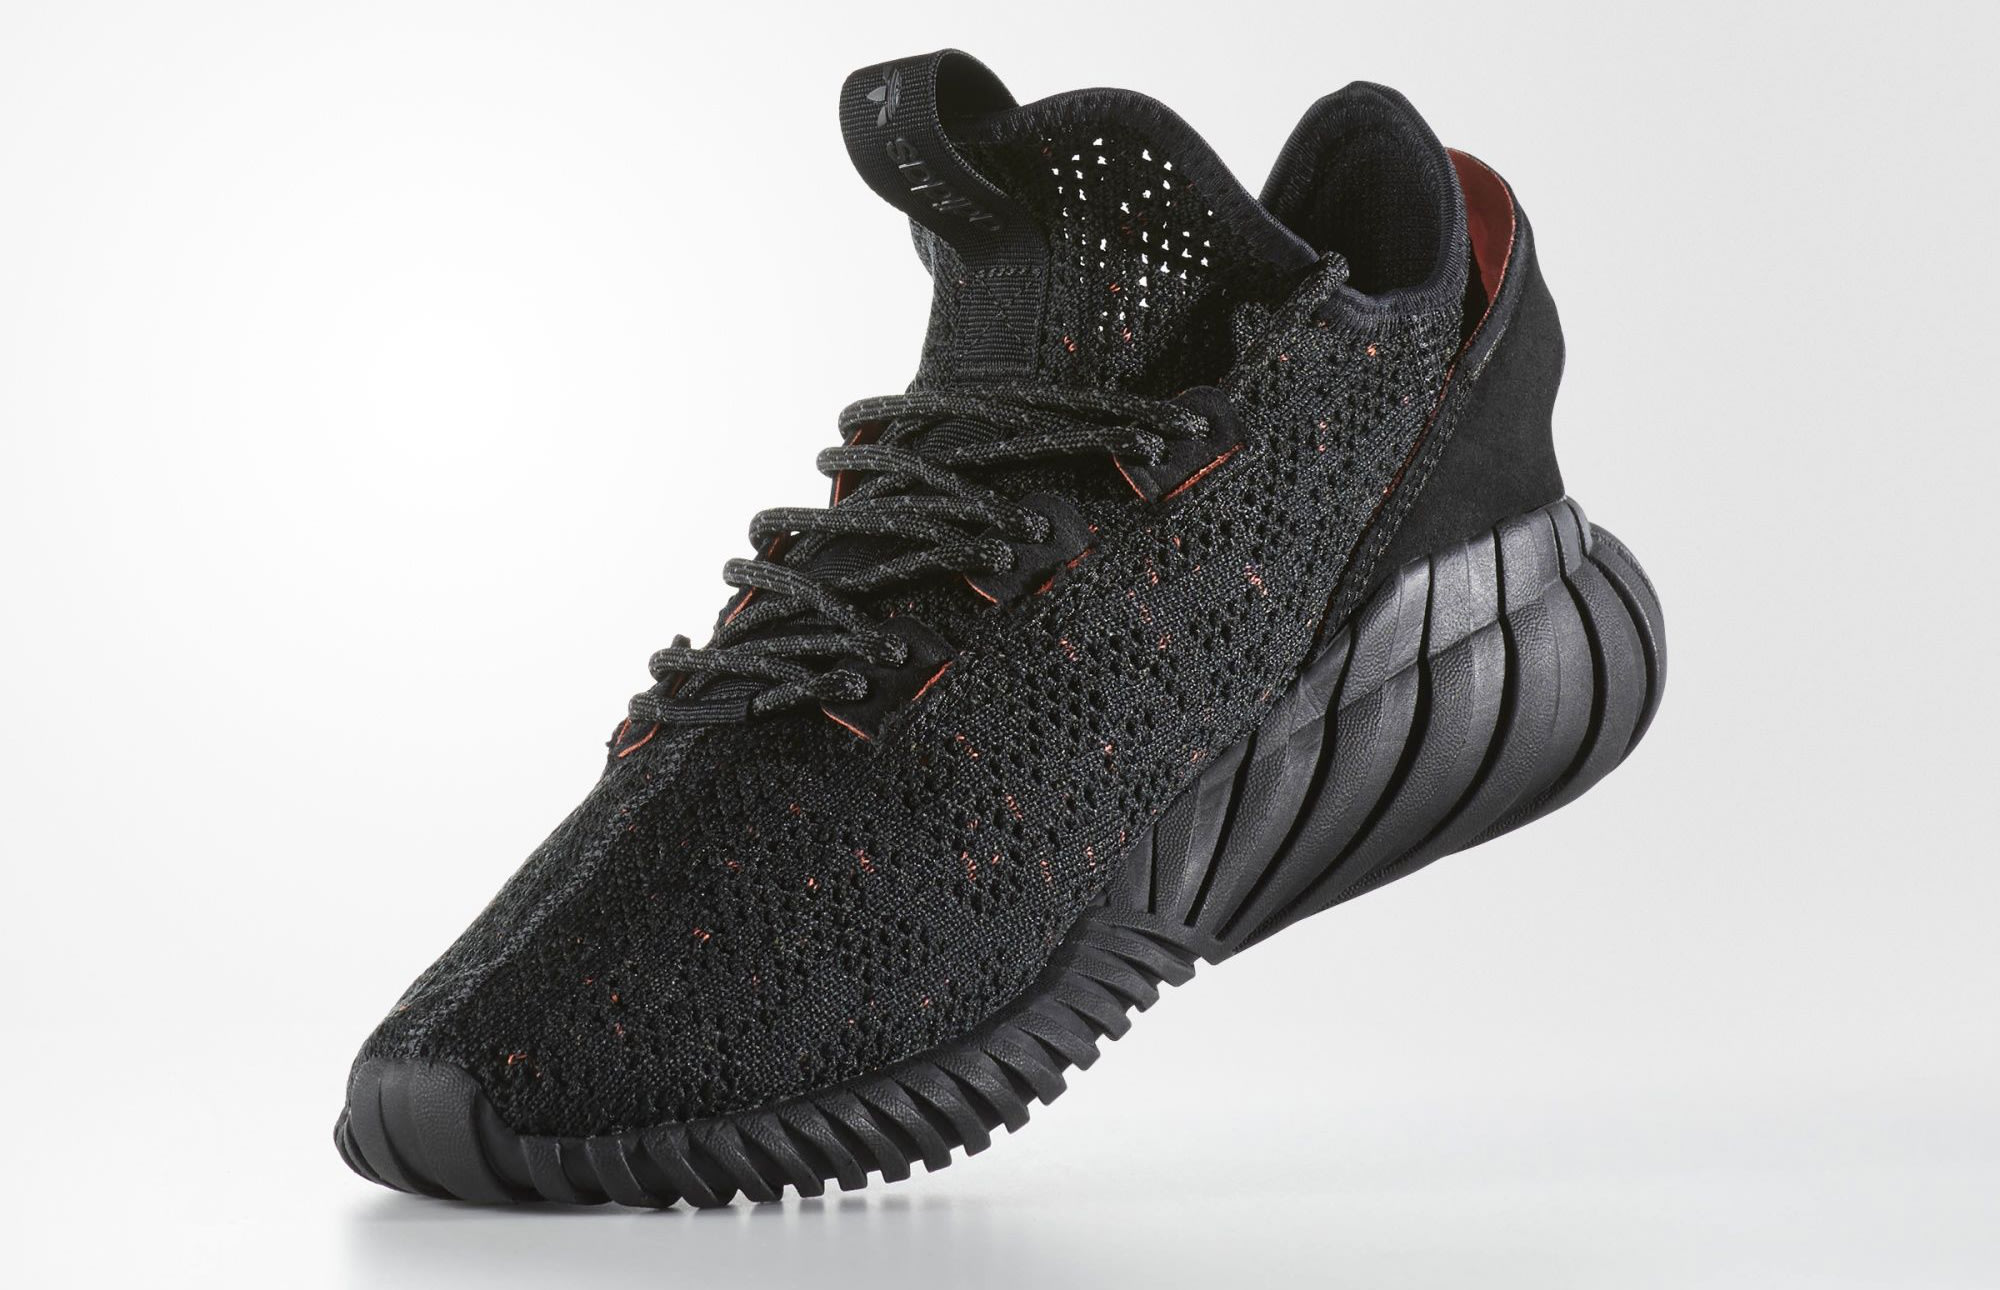 Get the Deal: Cheap Adidas Men's Tubular Doom Primeknit Casual Sneakers